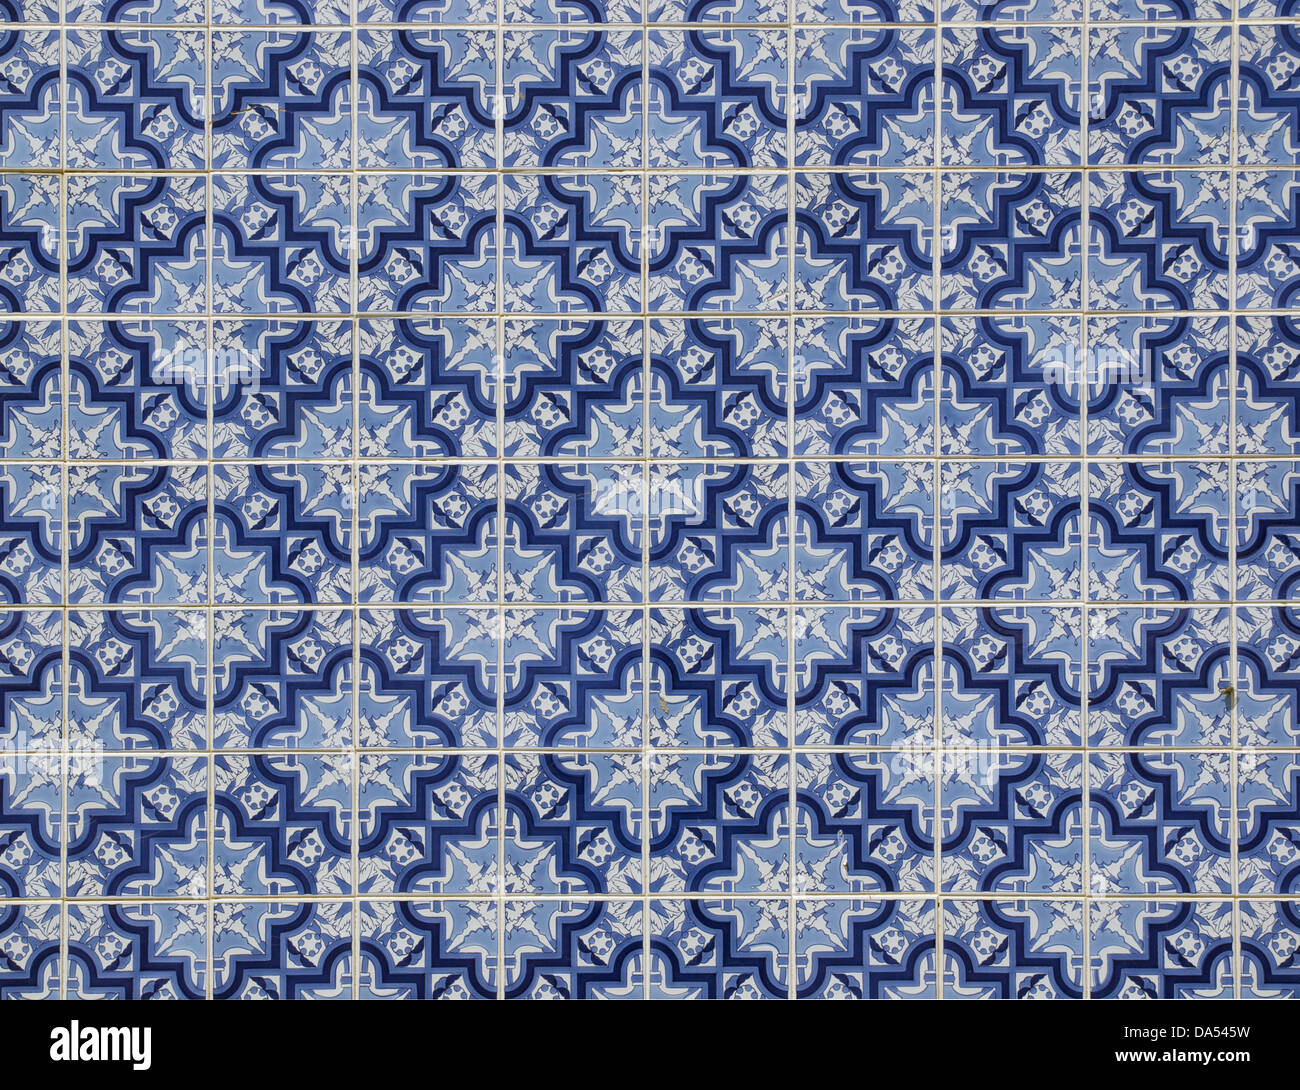 Typical Portugese Azulejos blue and white tiles - Stock Image